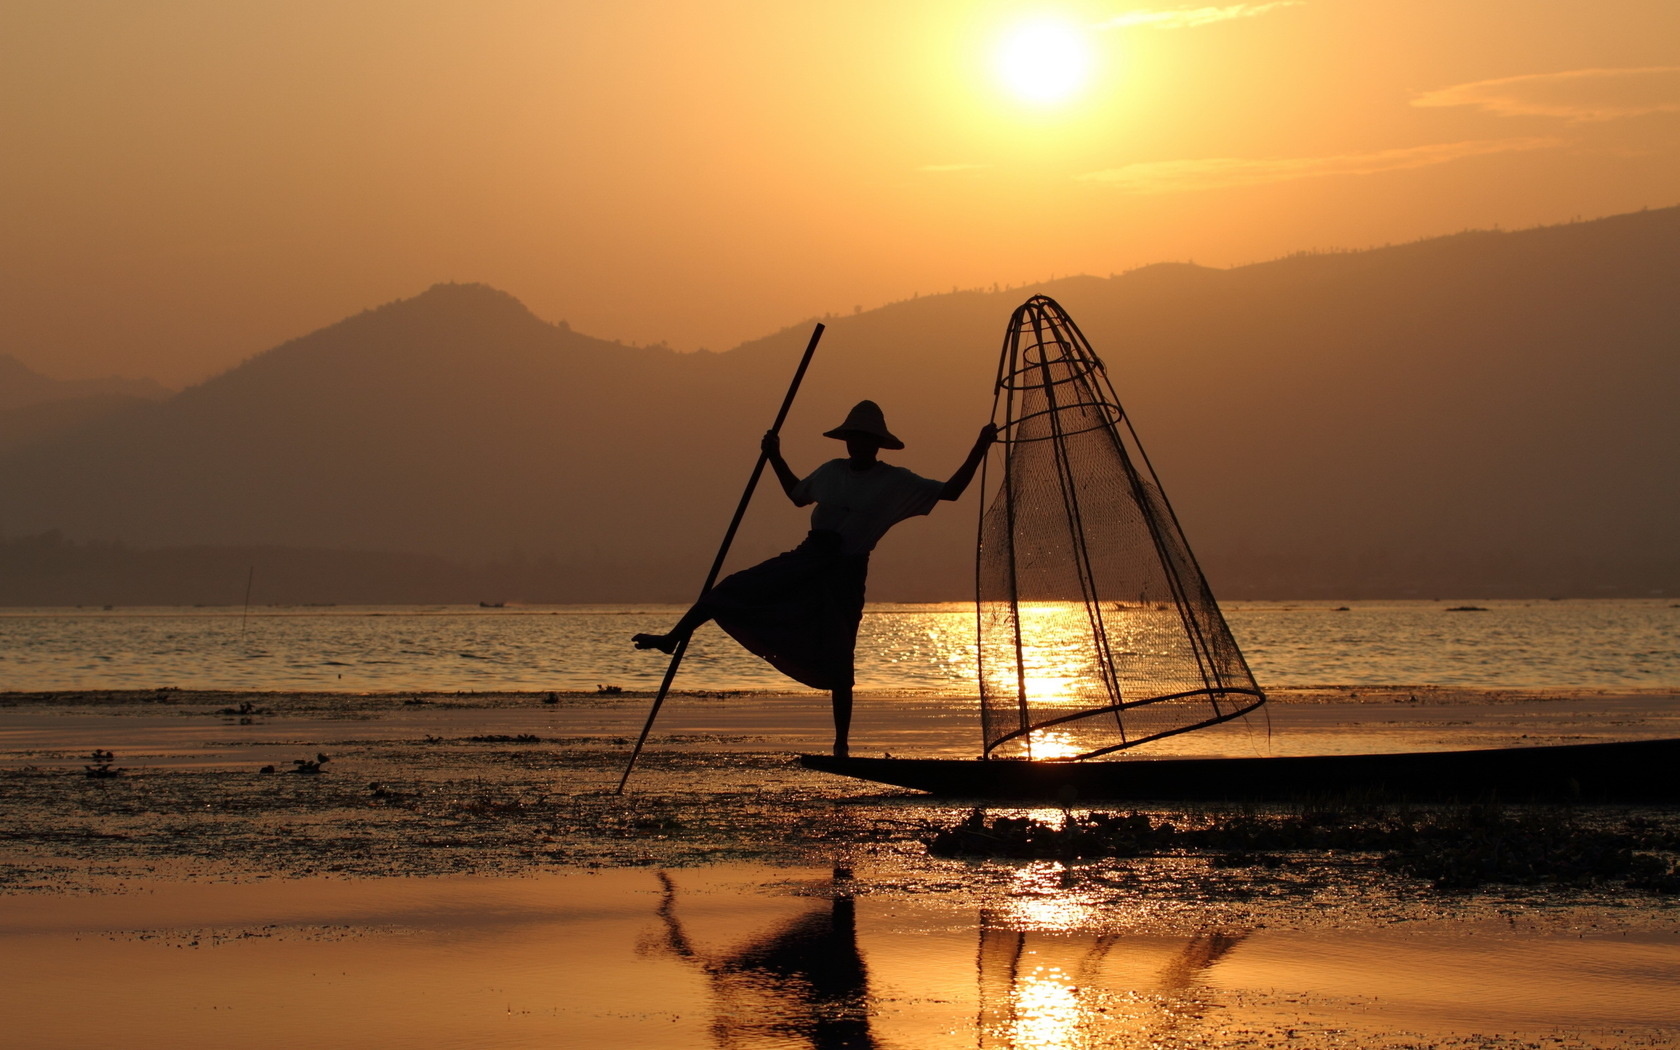 sunset, fisherman, network